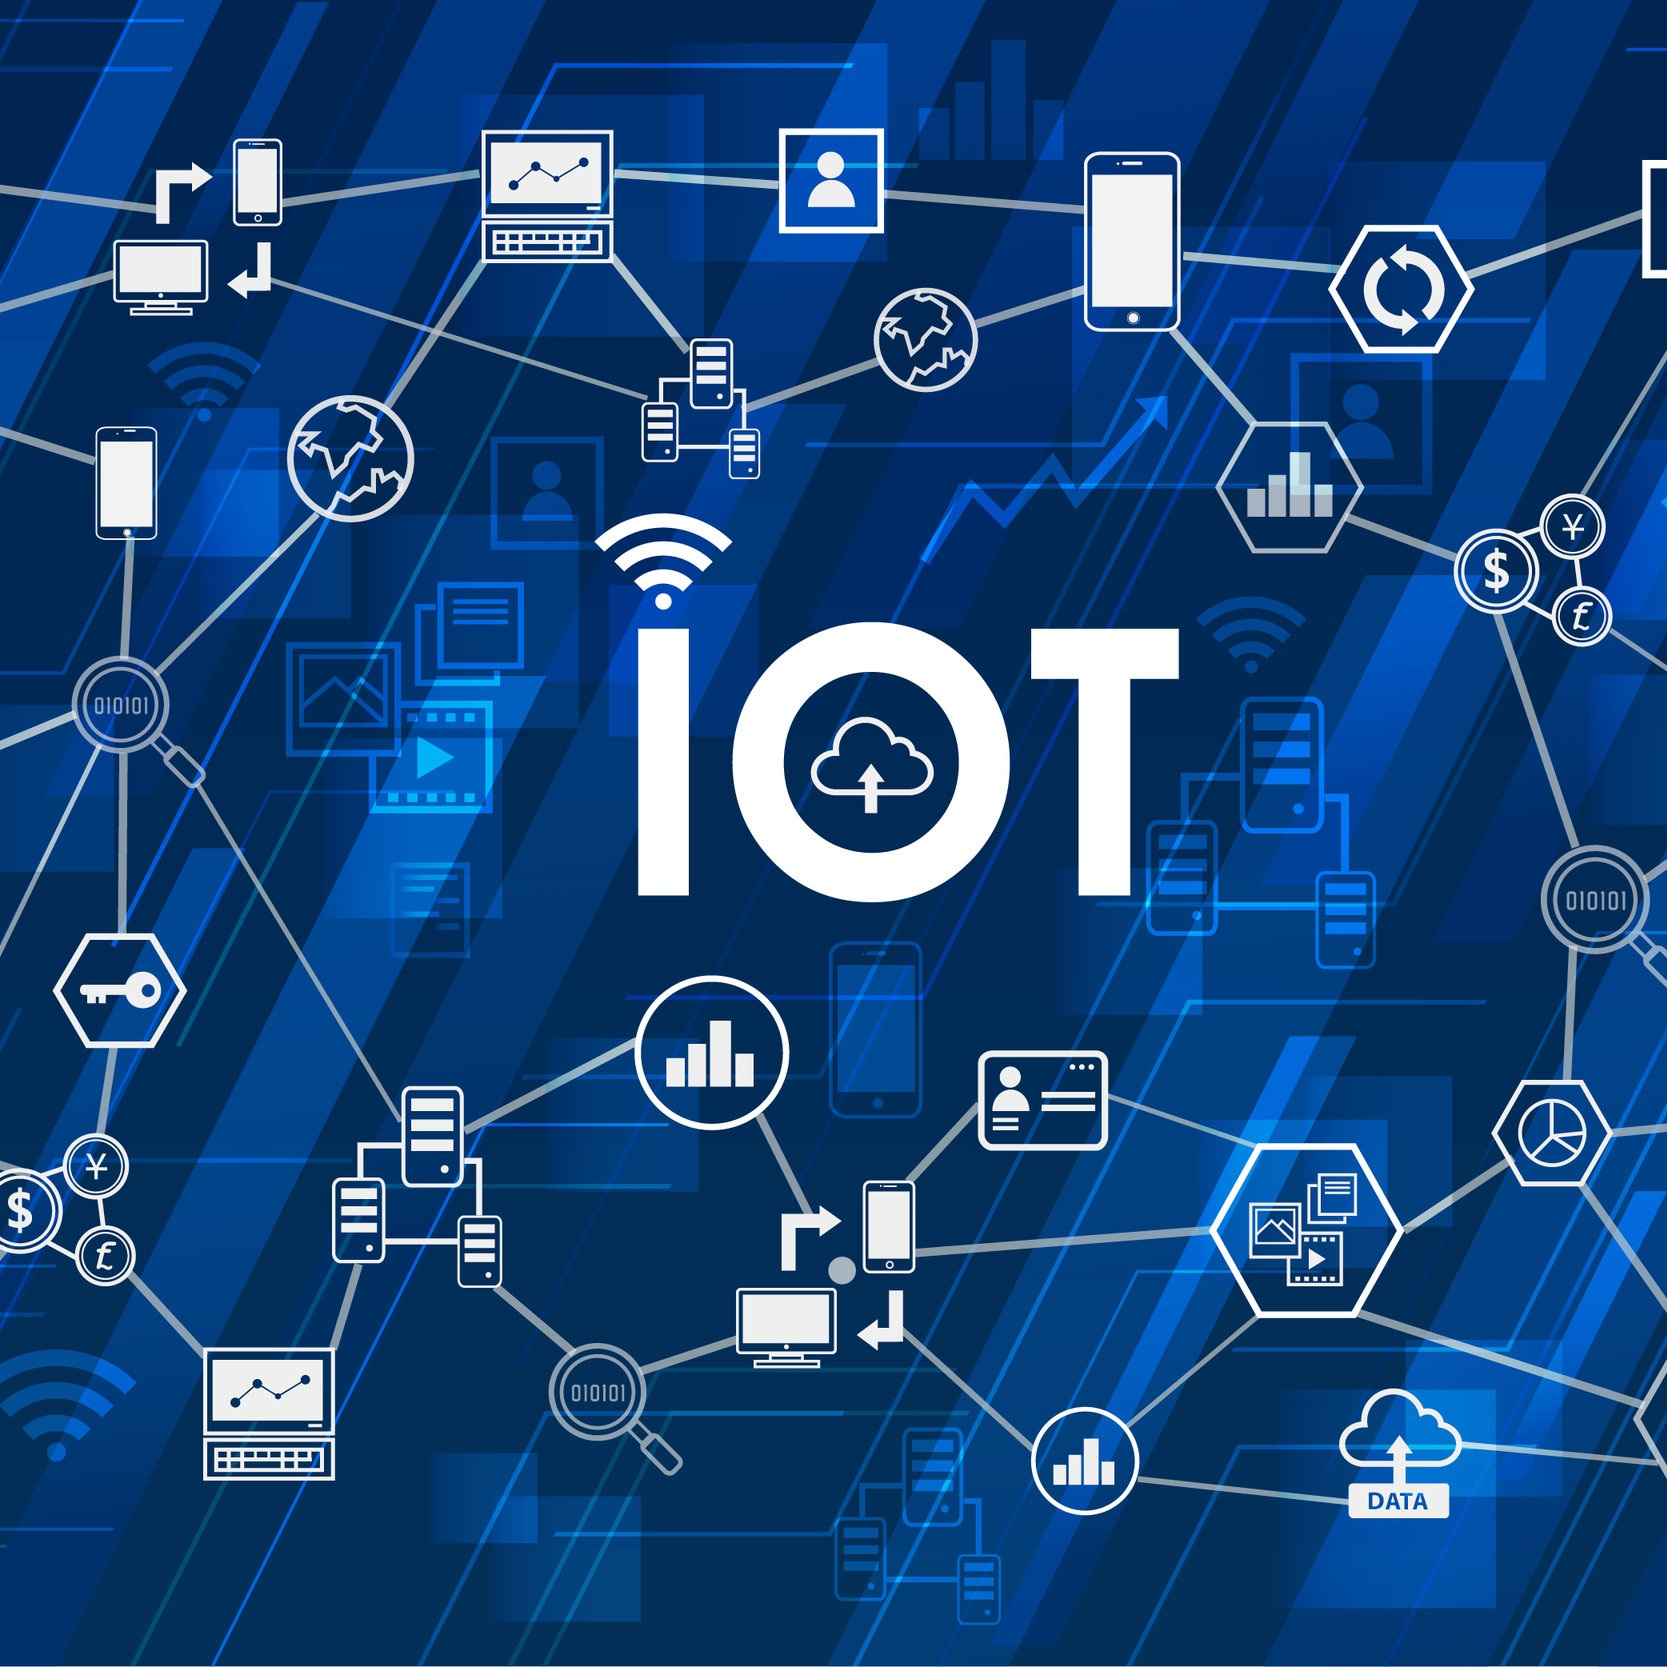 IoT is rapidly gaining traction in the marine industry